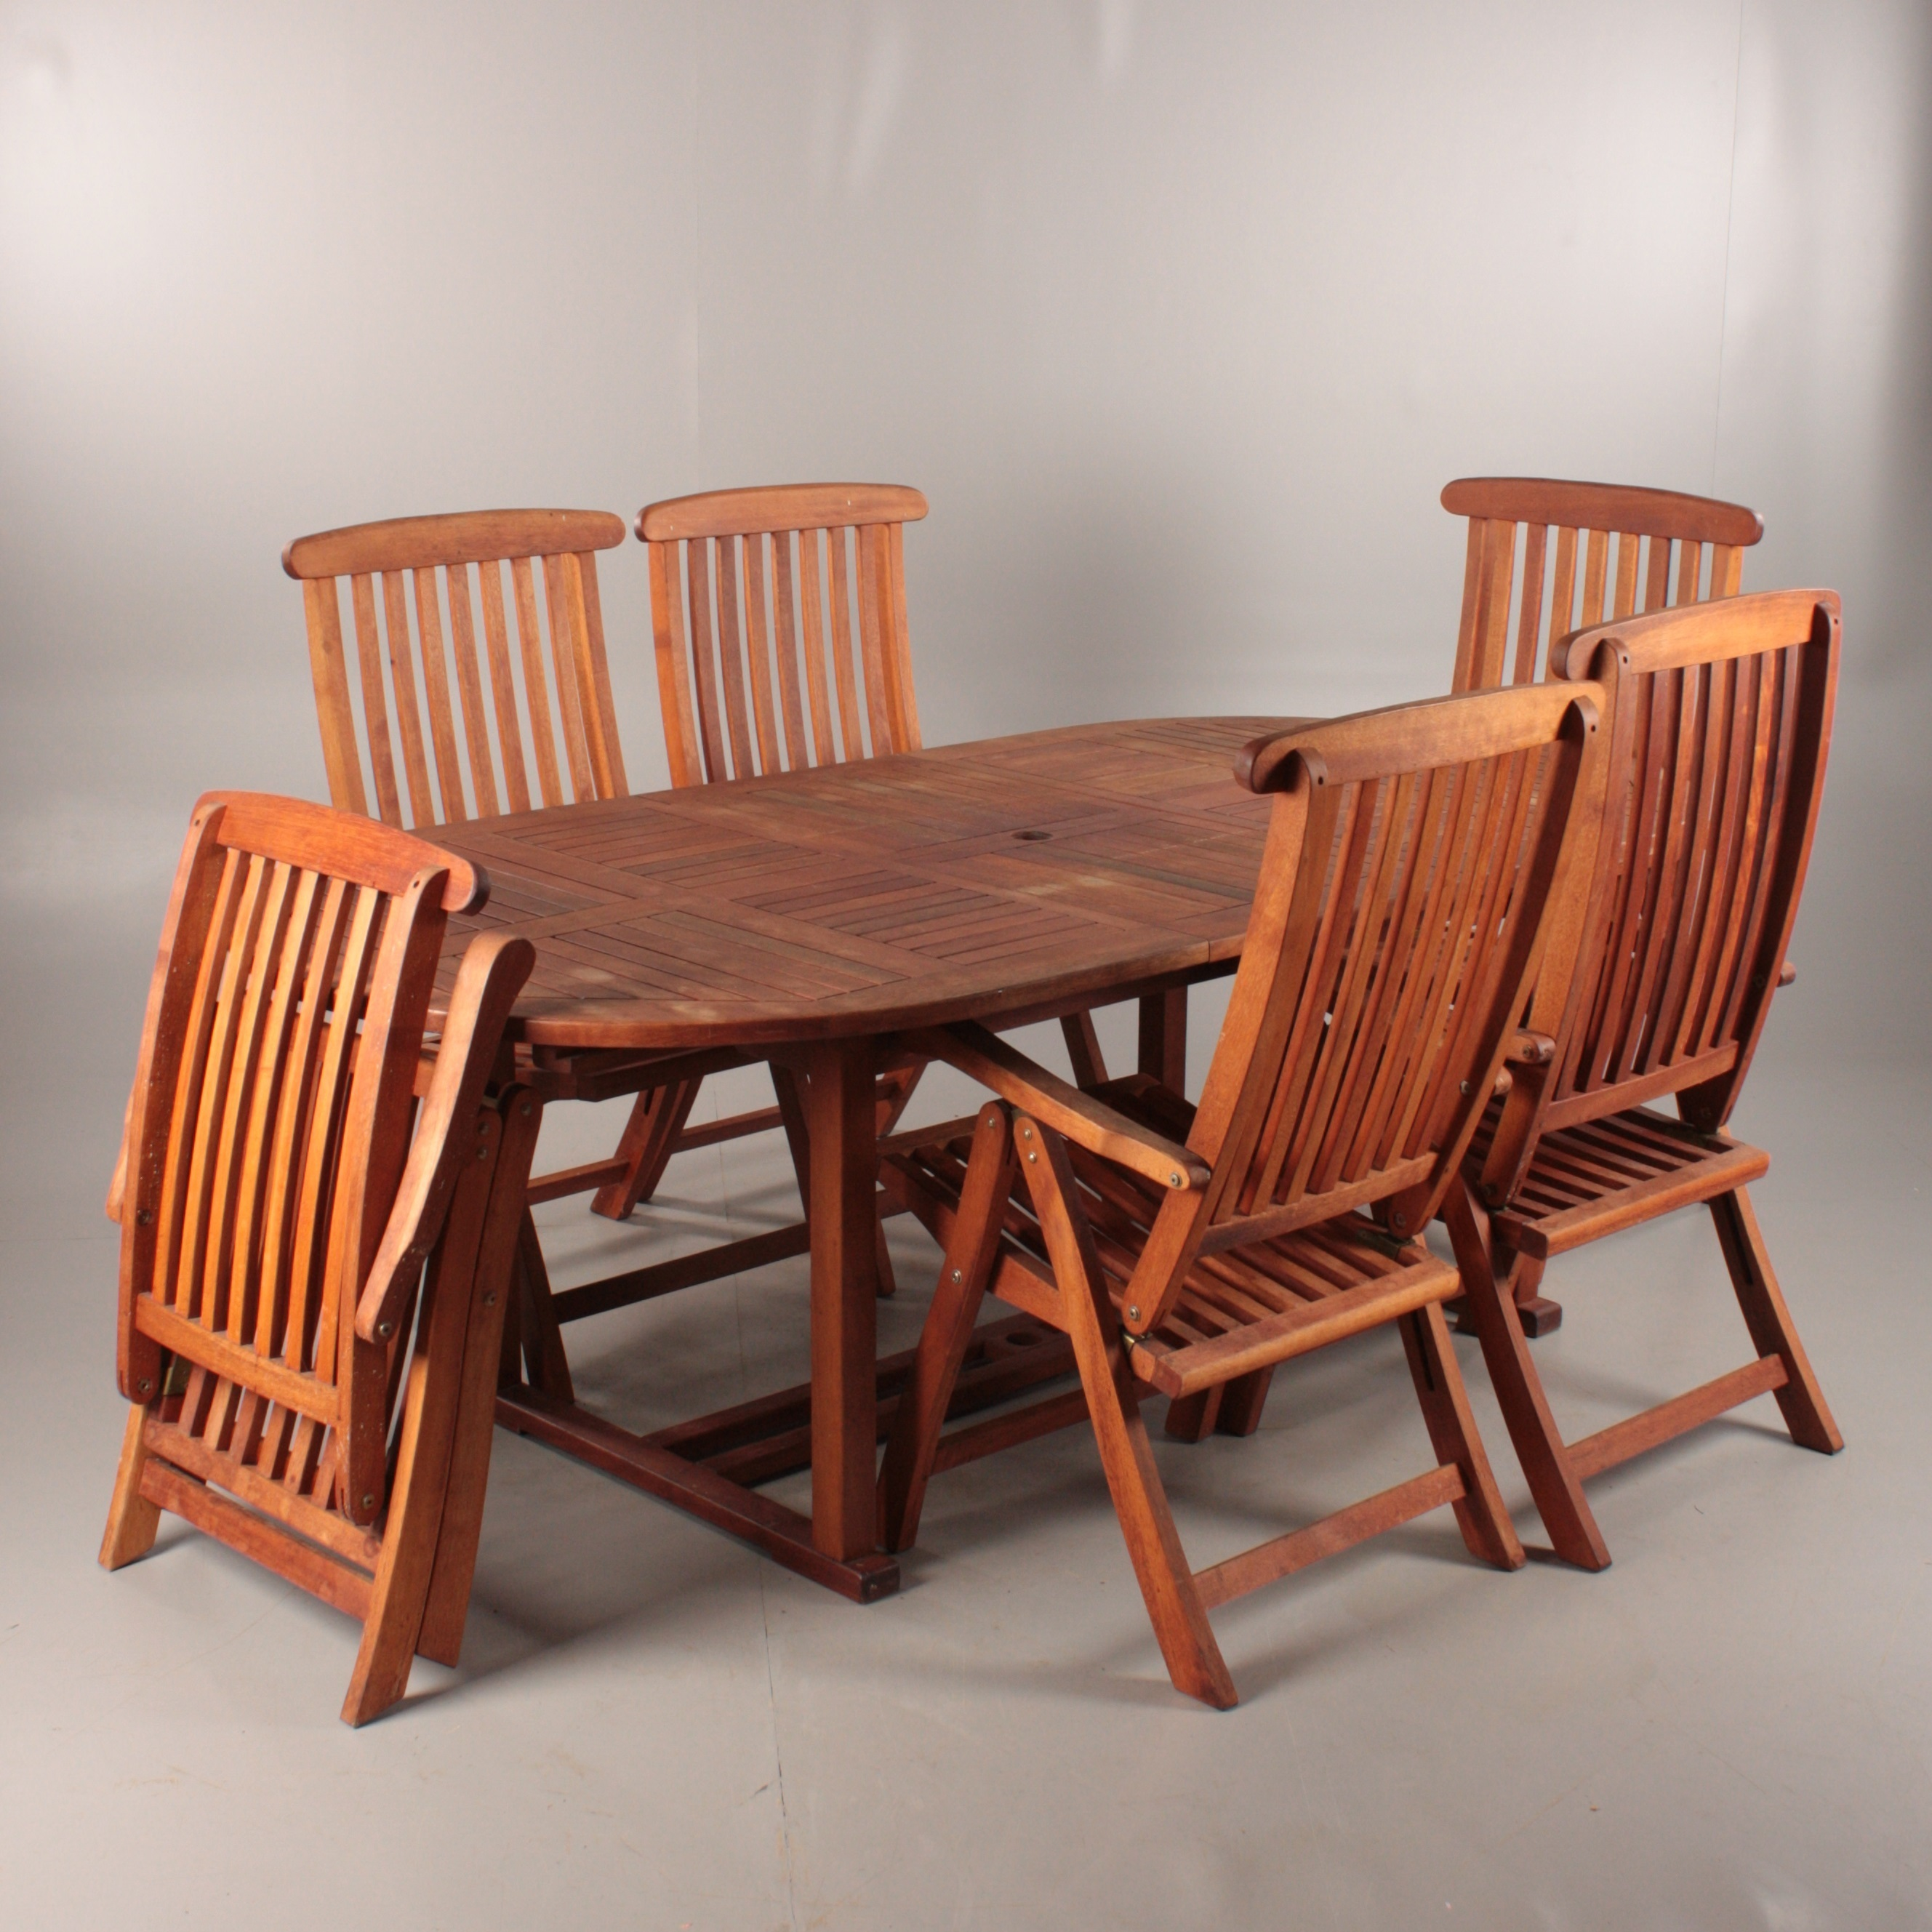 Tradgardsmobler 7 Delar Furniture Garden Furniture Auctionet